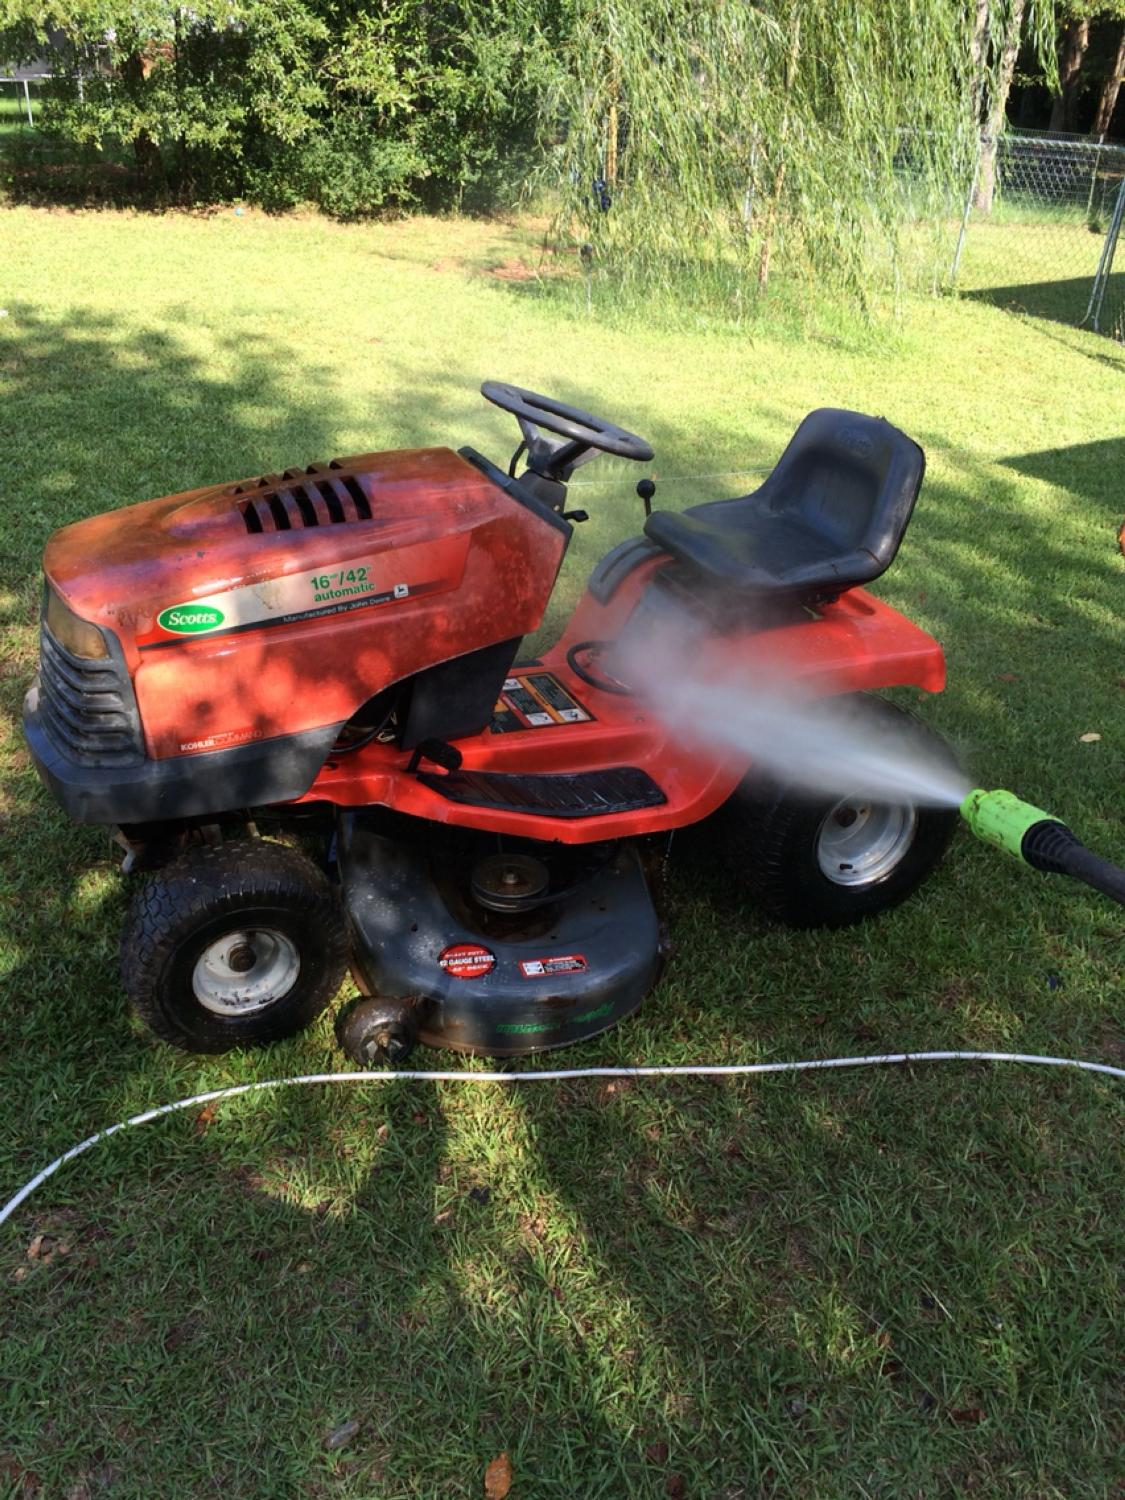 Best Two Riding Mowers For Or Trade Scott S 16 42 In Griffin Georgia 2019